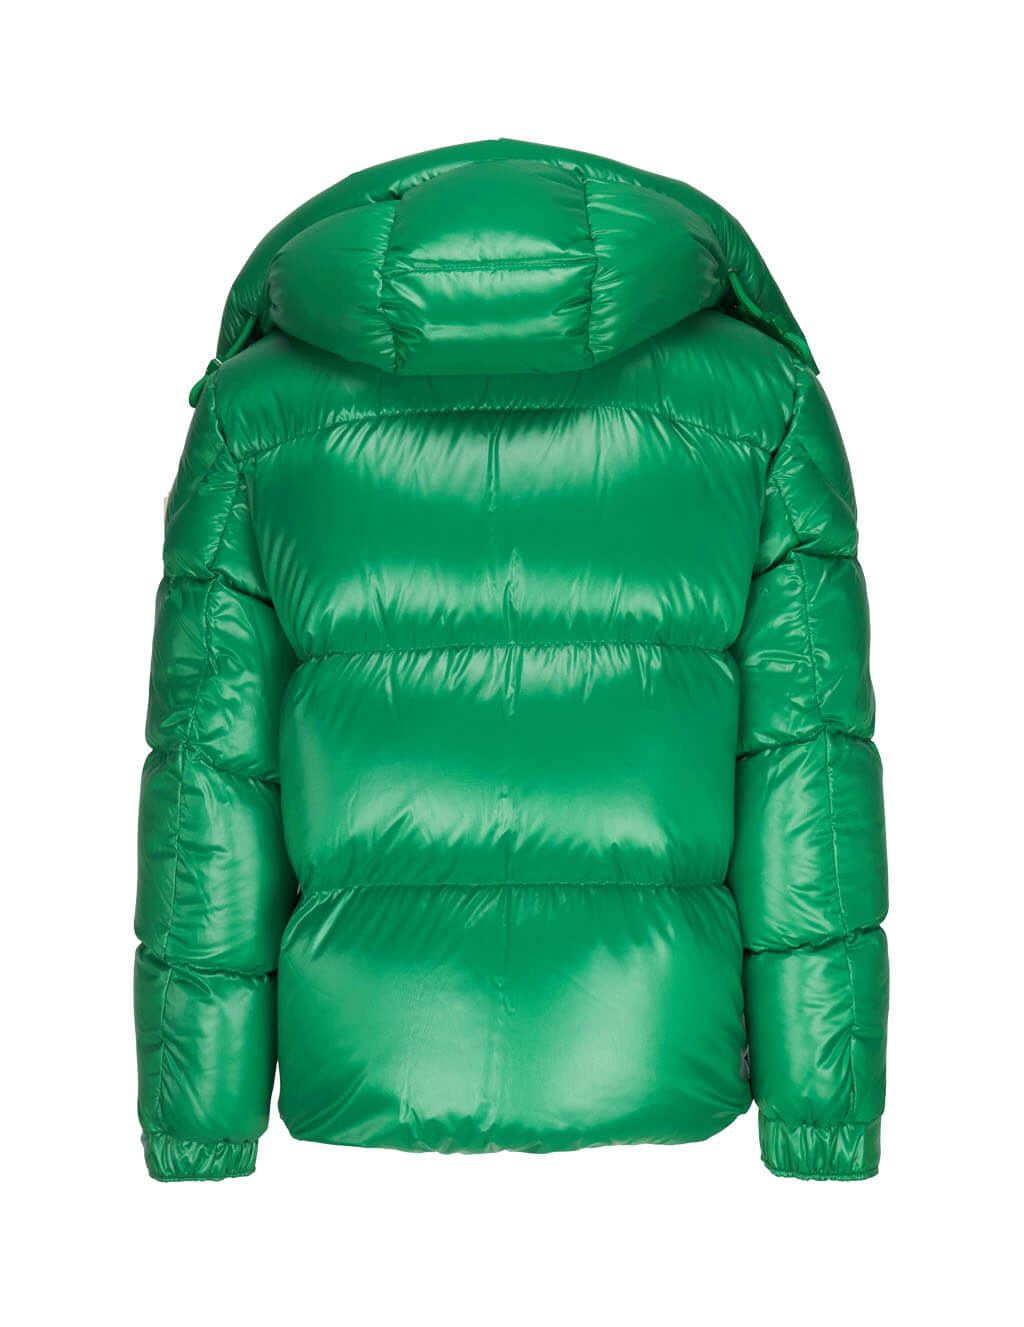 Moncler Men's Pastel Green Vignemale Jacket 0911B5800068950845